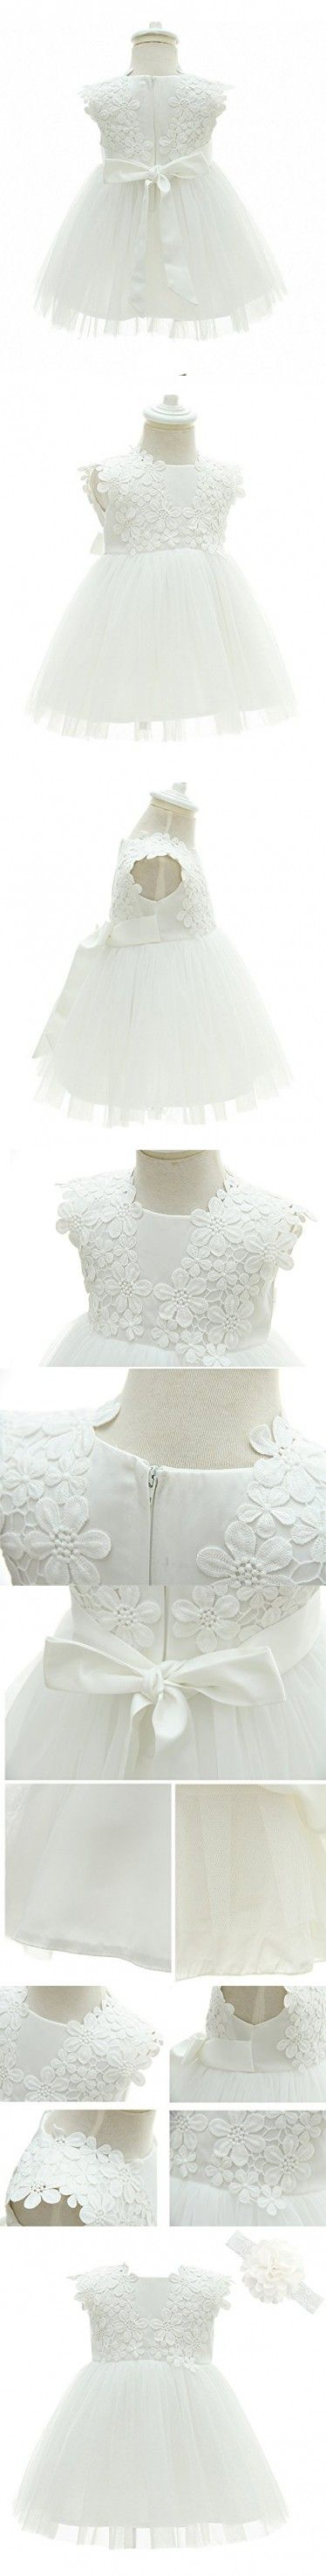 Greatop Baby Girls Dress Christening Baptism Party Formal Dress(White(Style 2),3M/0-6Month)